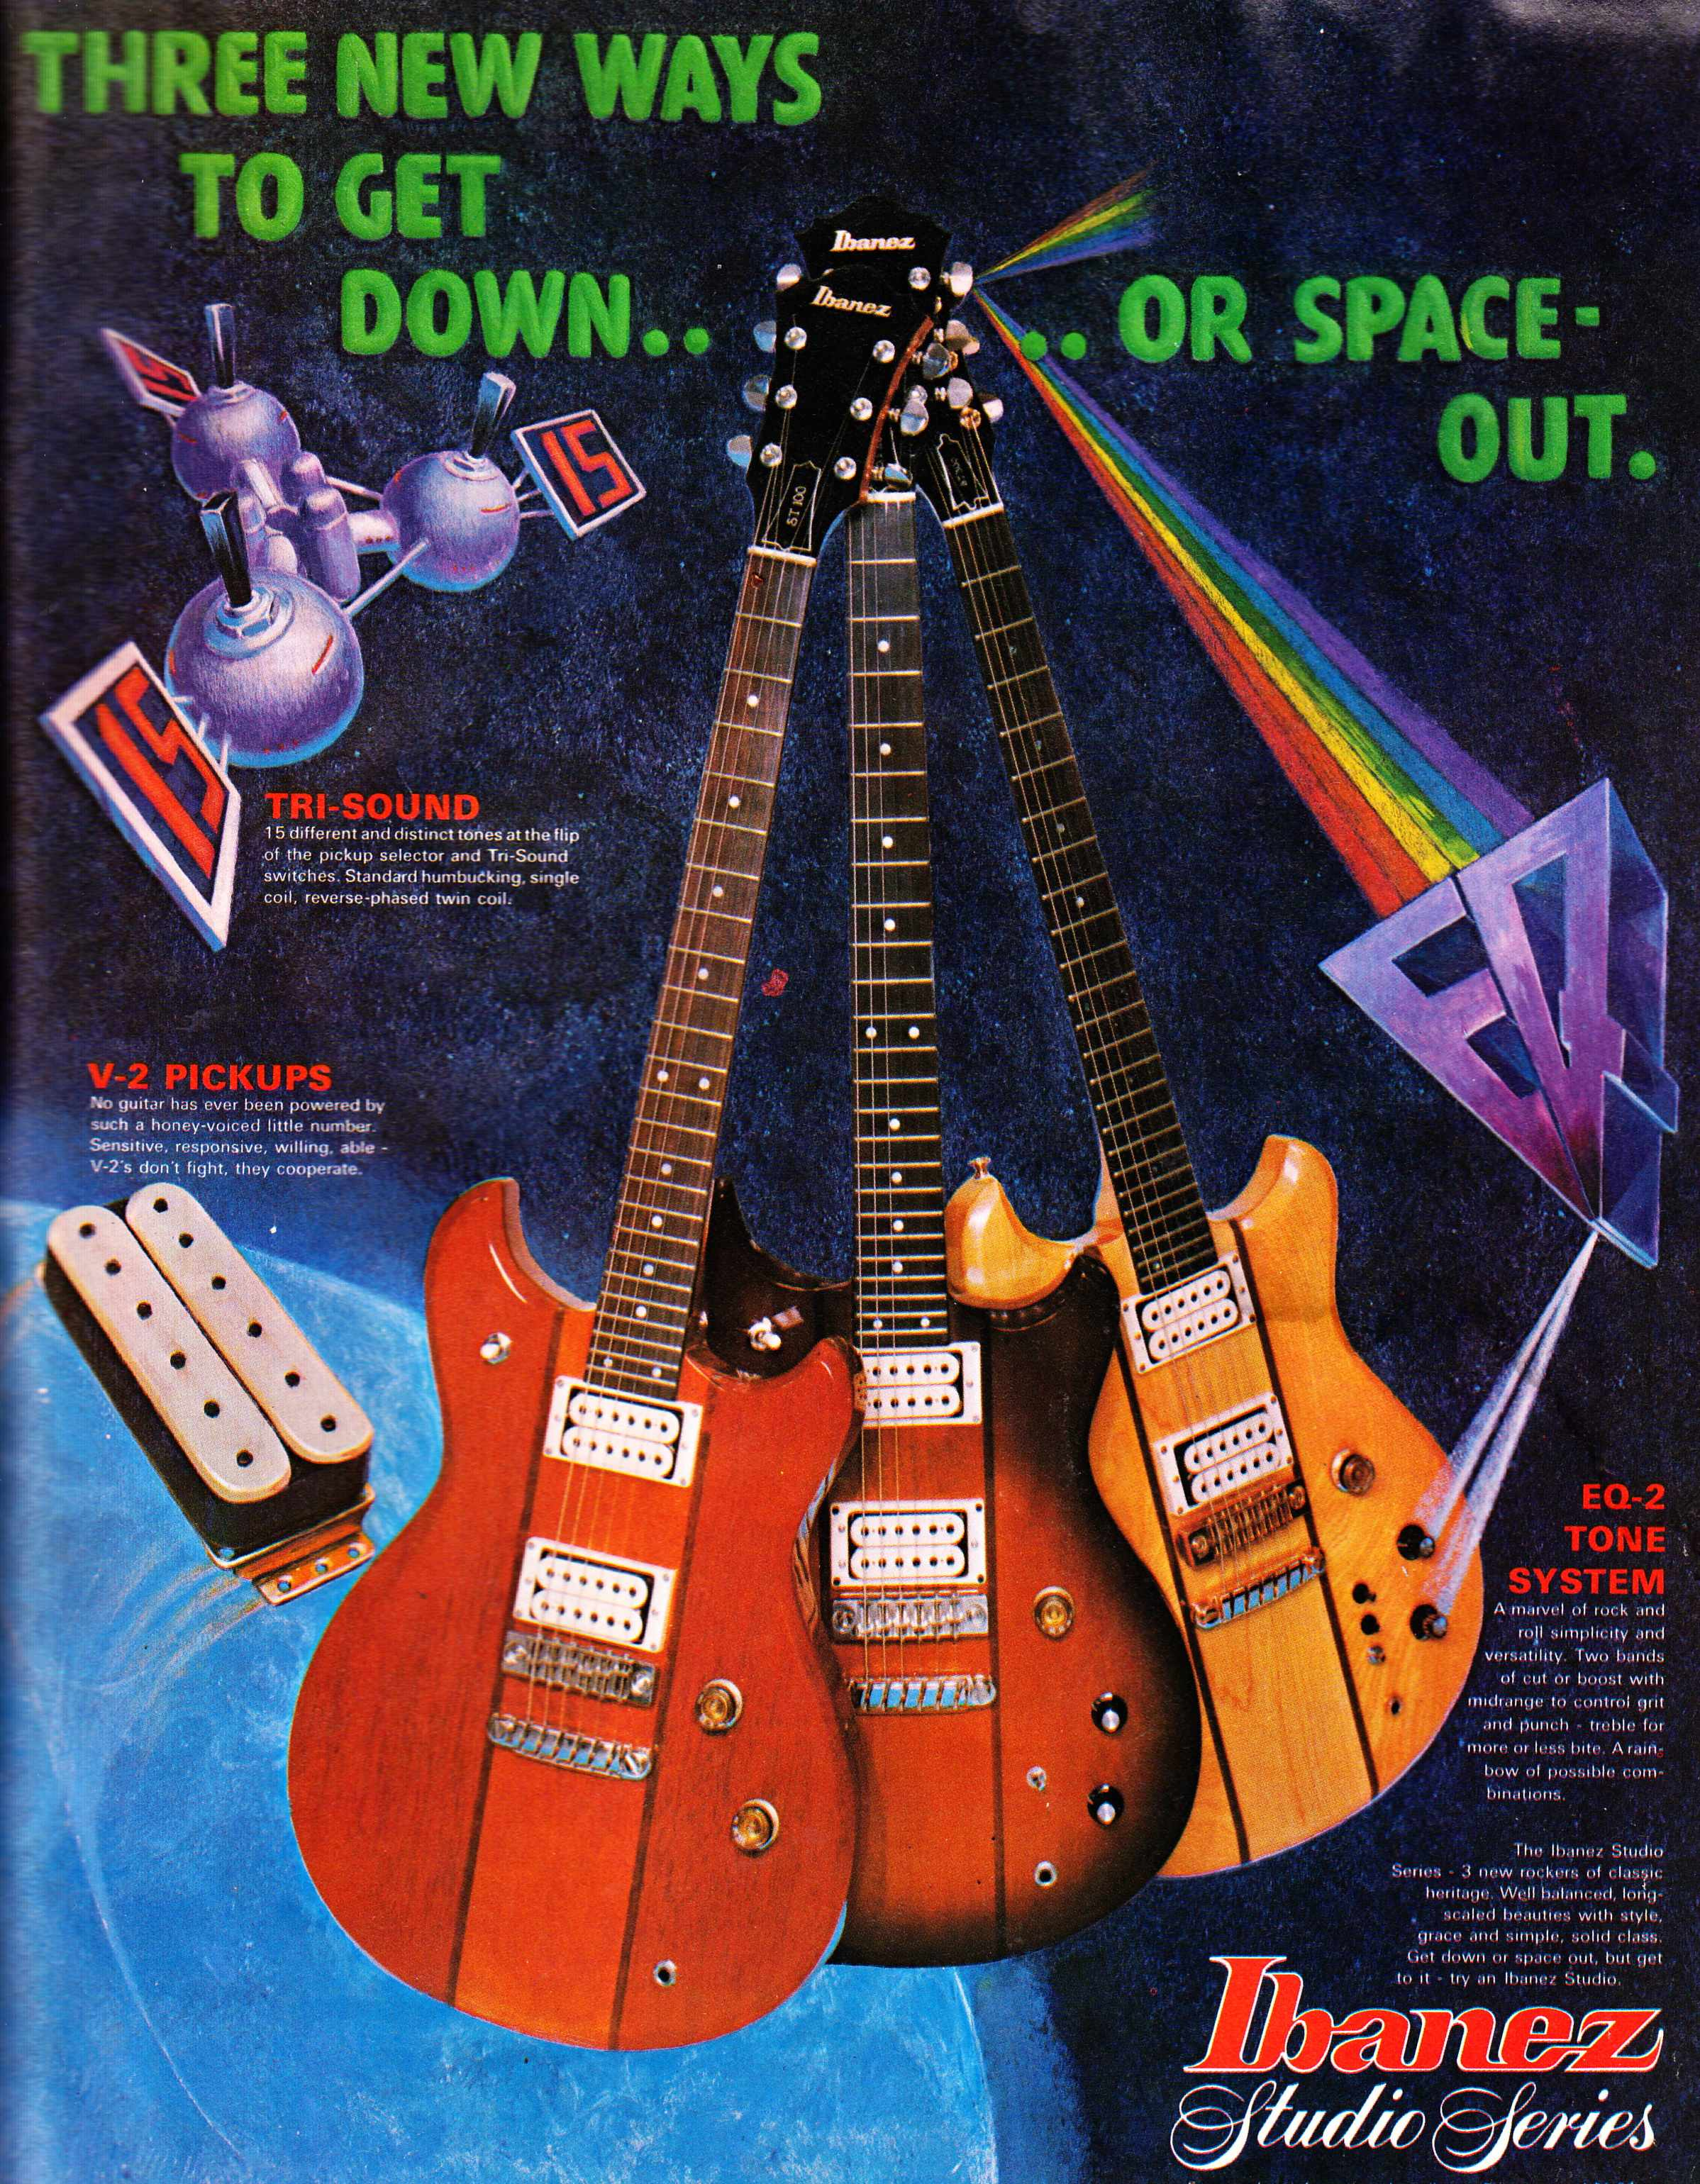 After ibanez was compelled to cease us distribution of their gibson